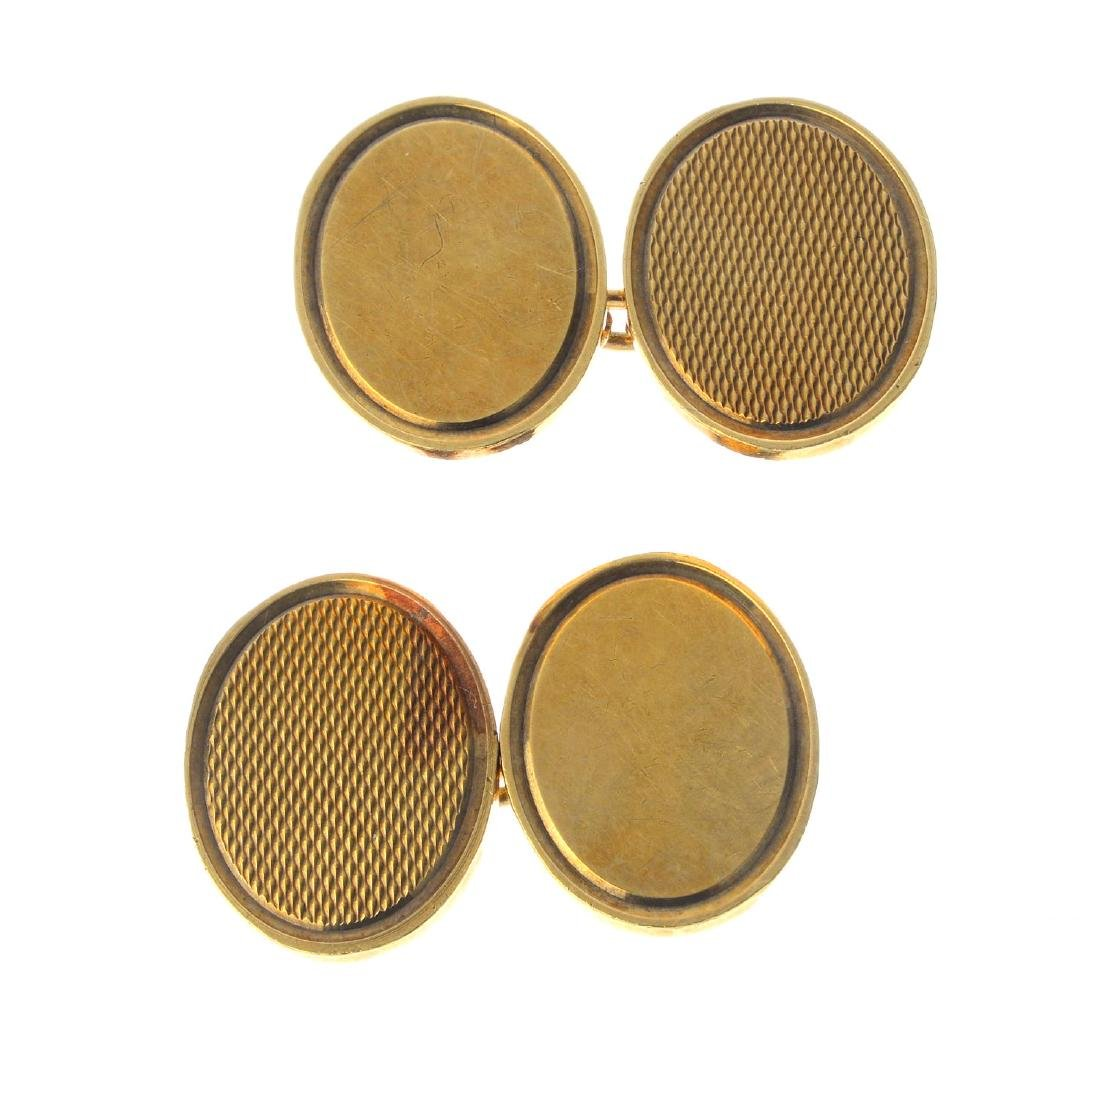 A pair of 1970s 9ct gold cufflinks. Each designed as